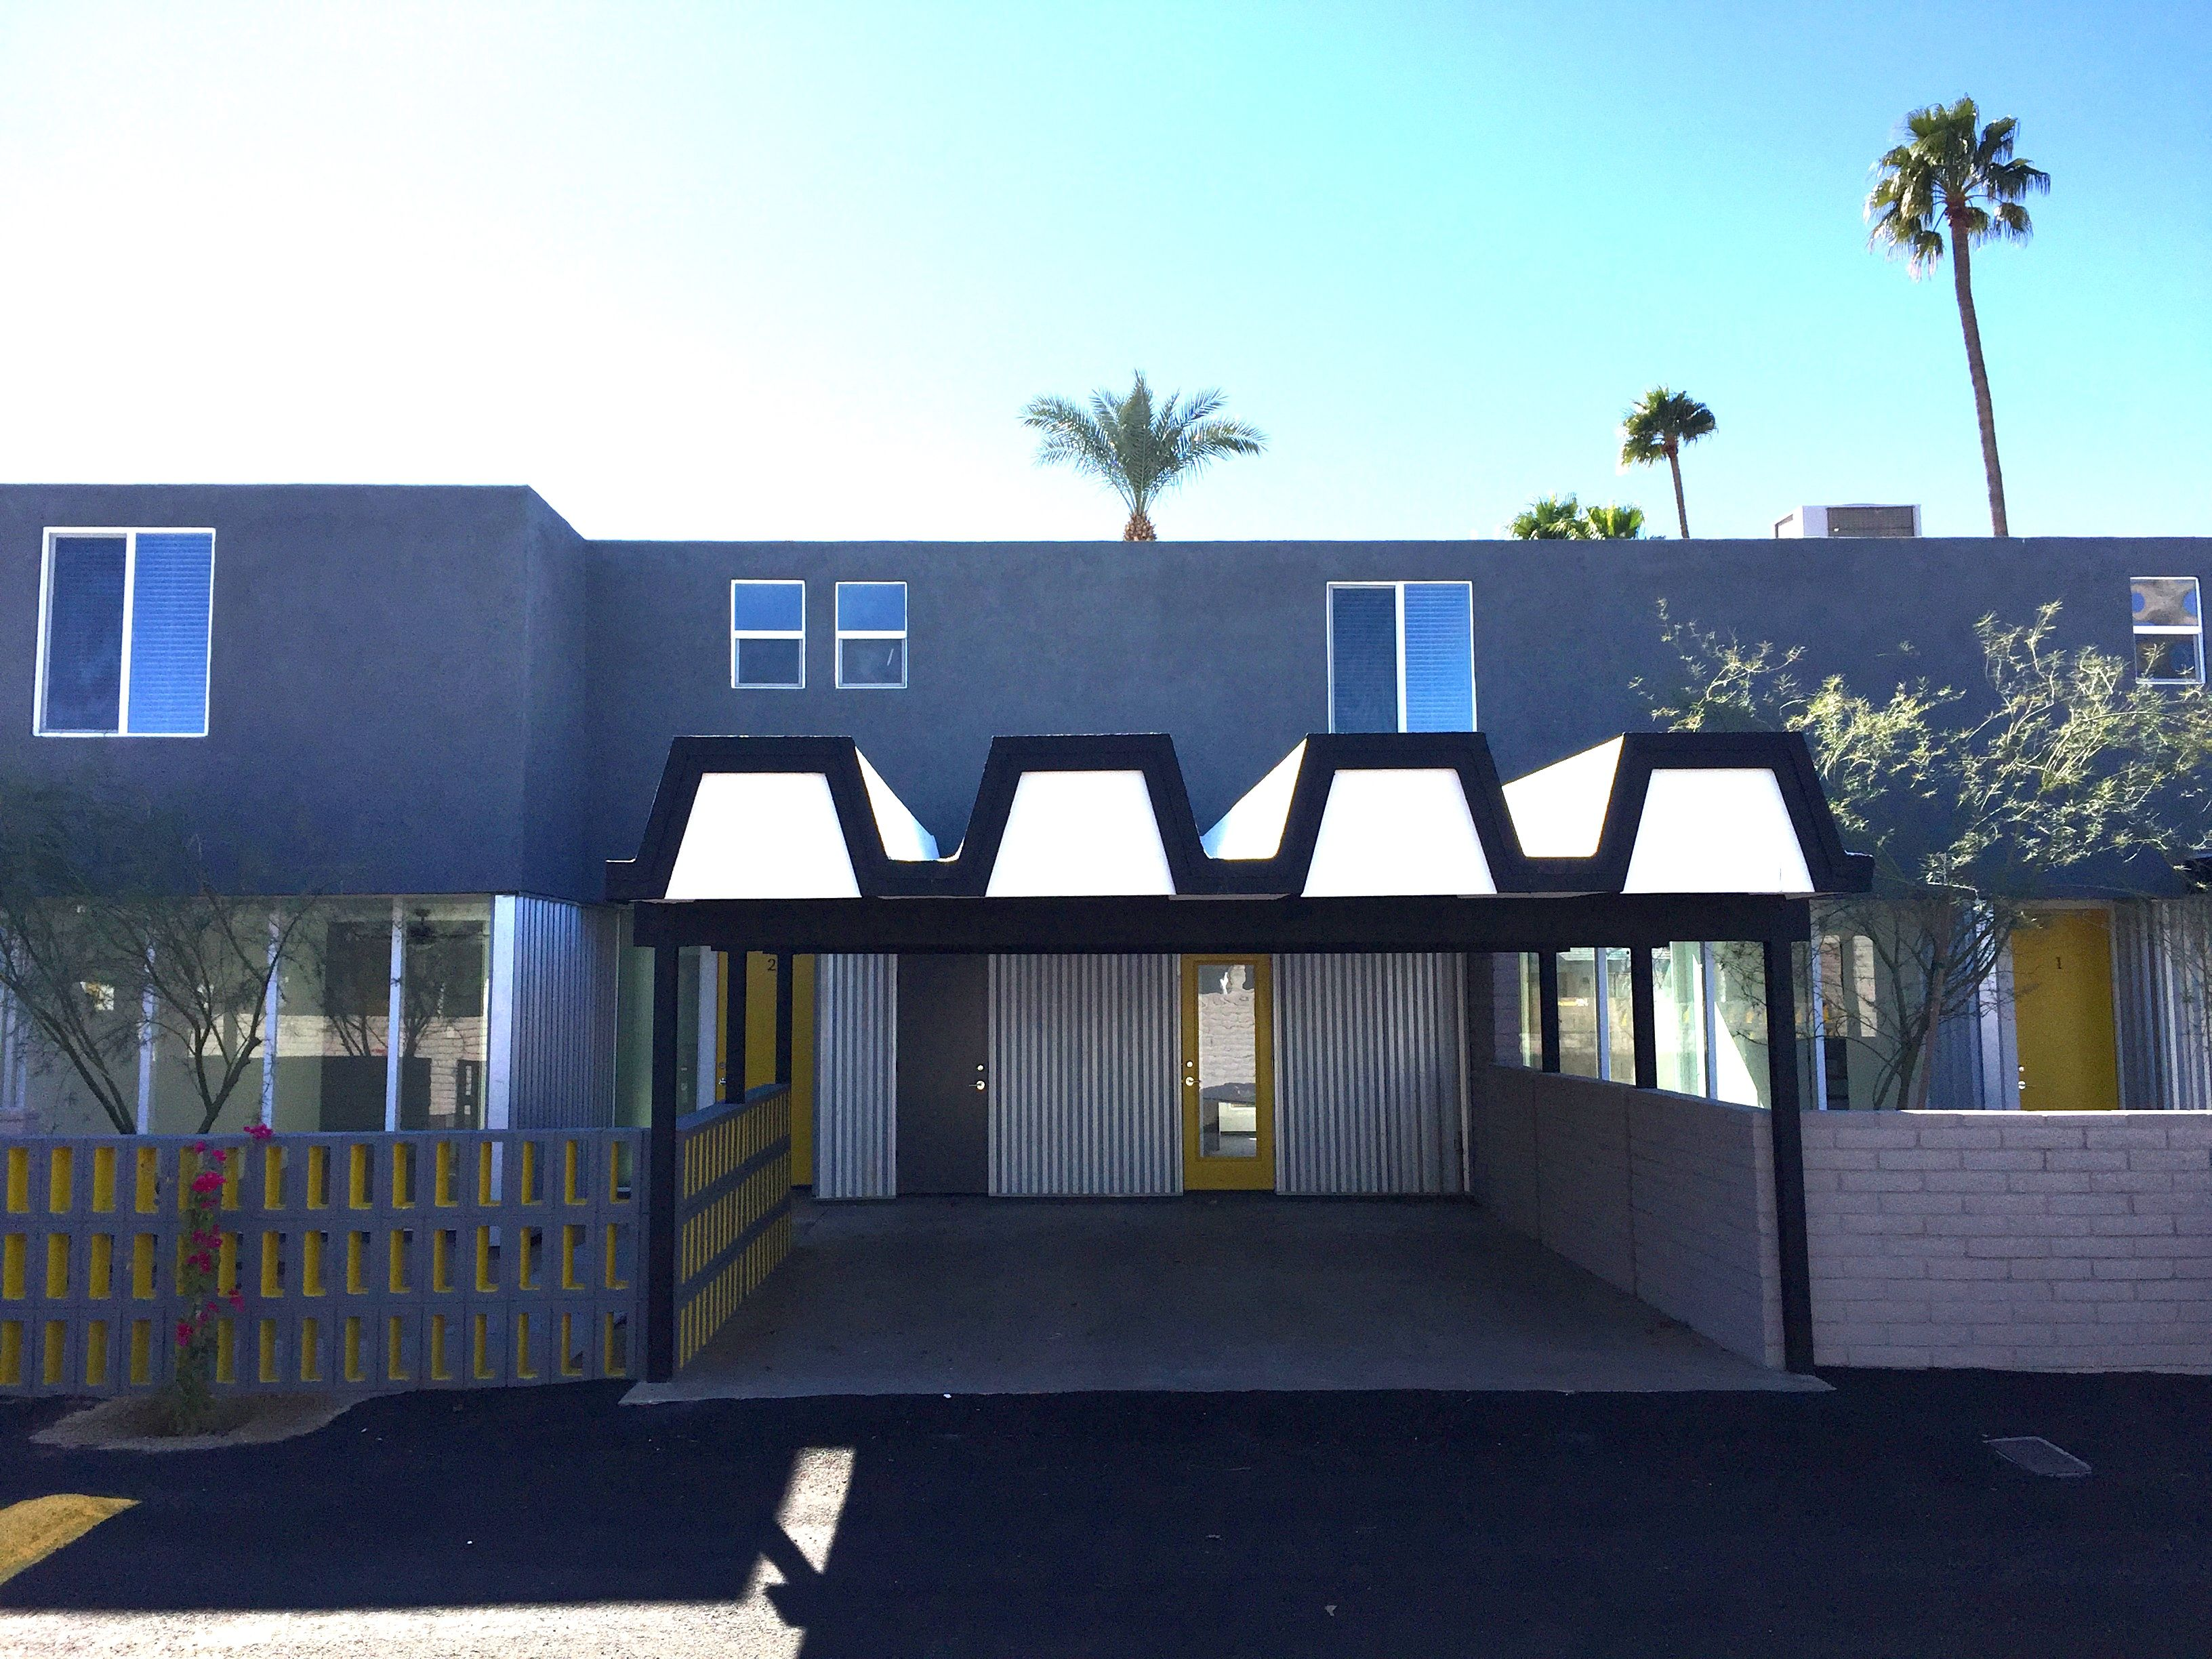 MODE Arcadia Townhomes is a midcentury modern twostory